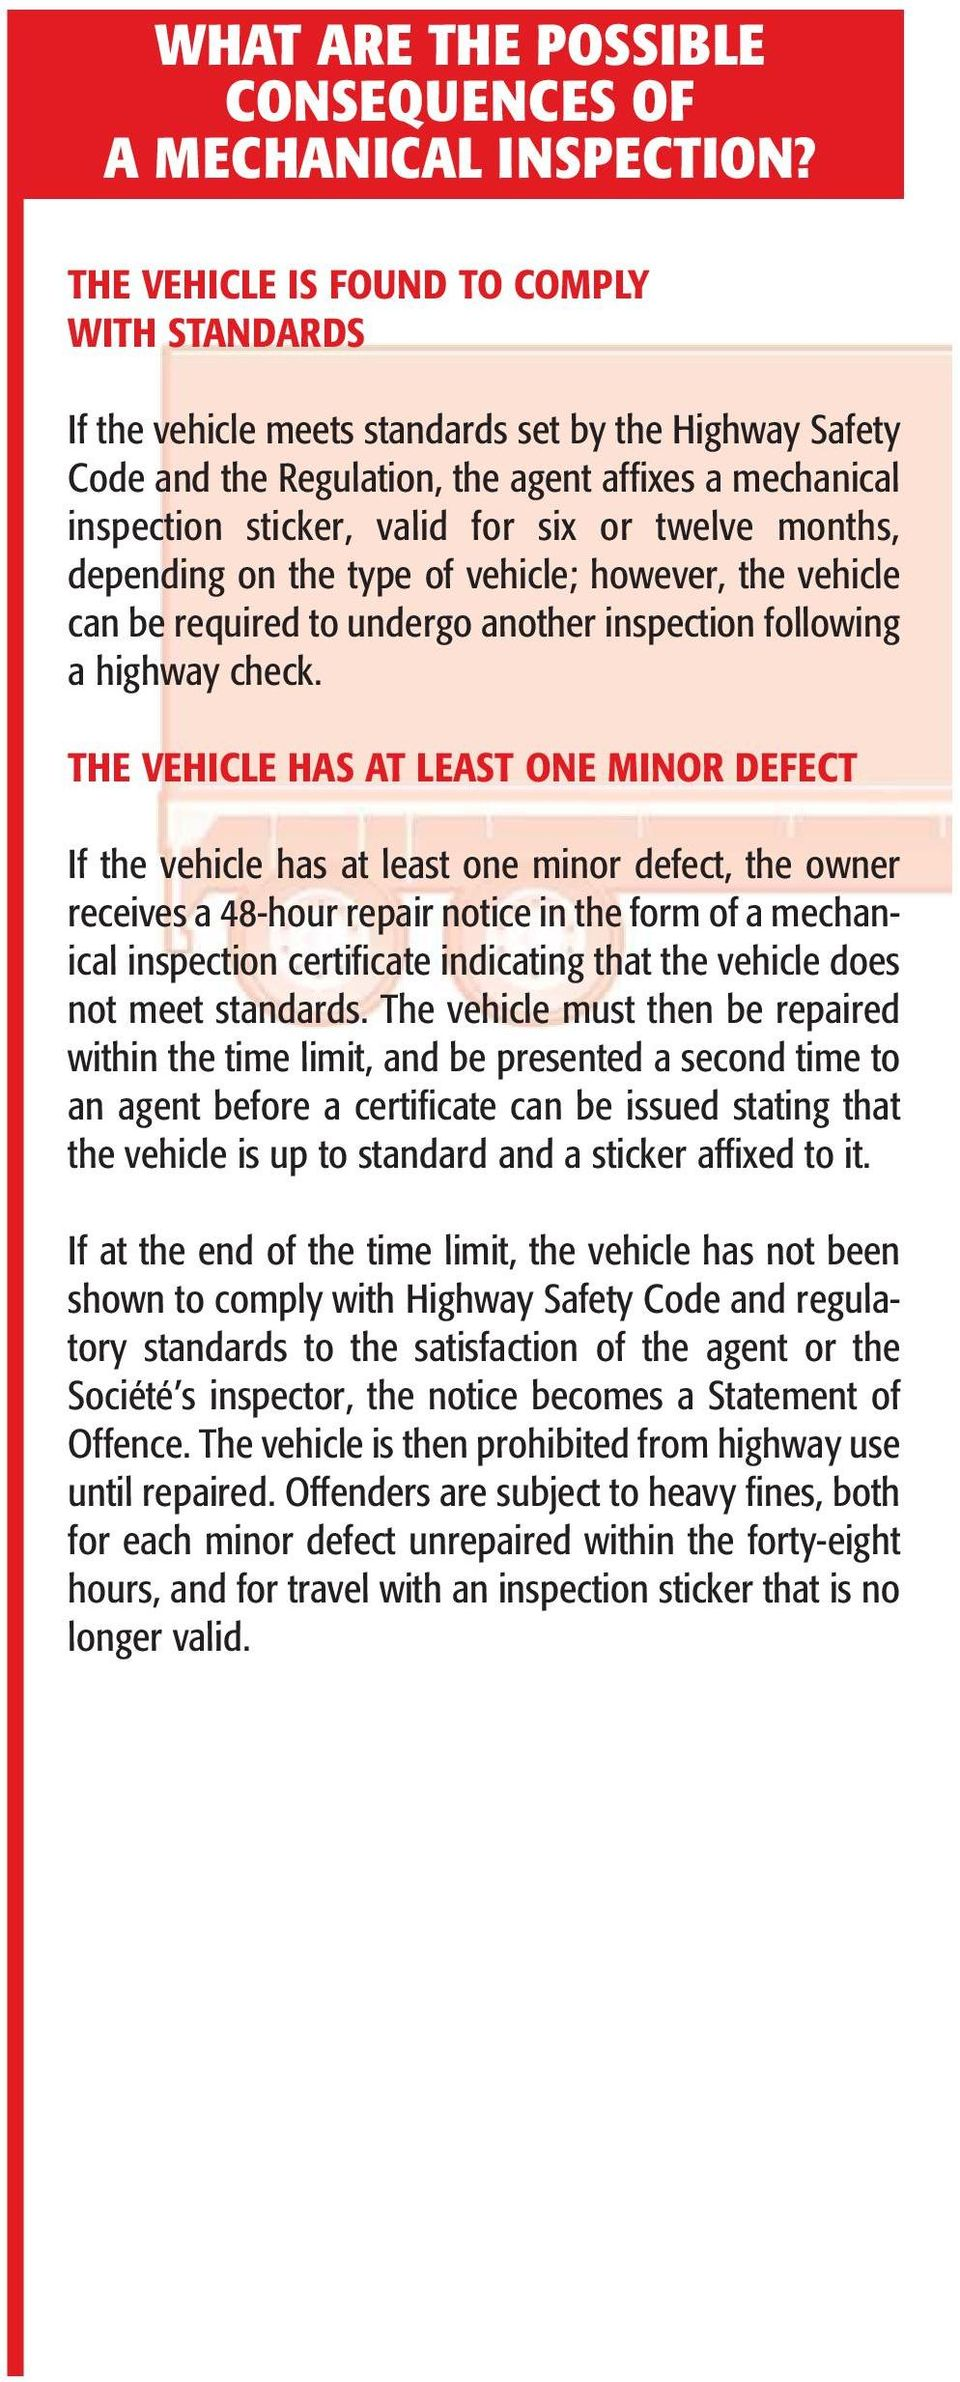 twelve months, depending on the type of vehicle; however, the vehicle can be required to undergo another inspection following a highway check.